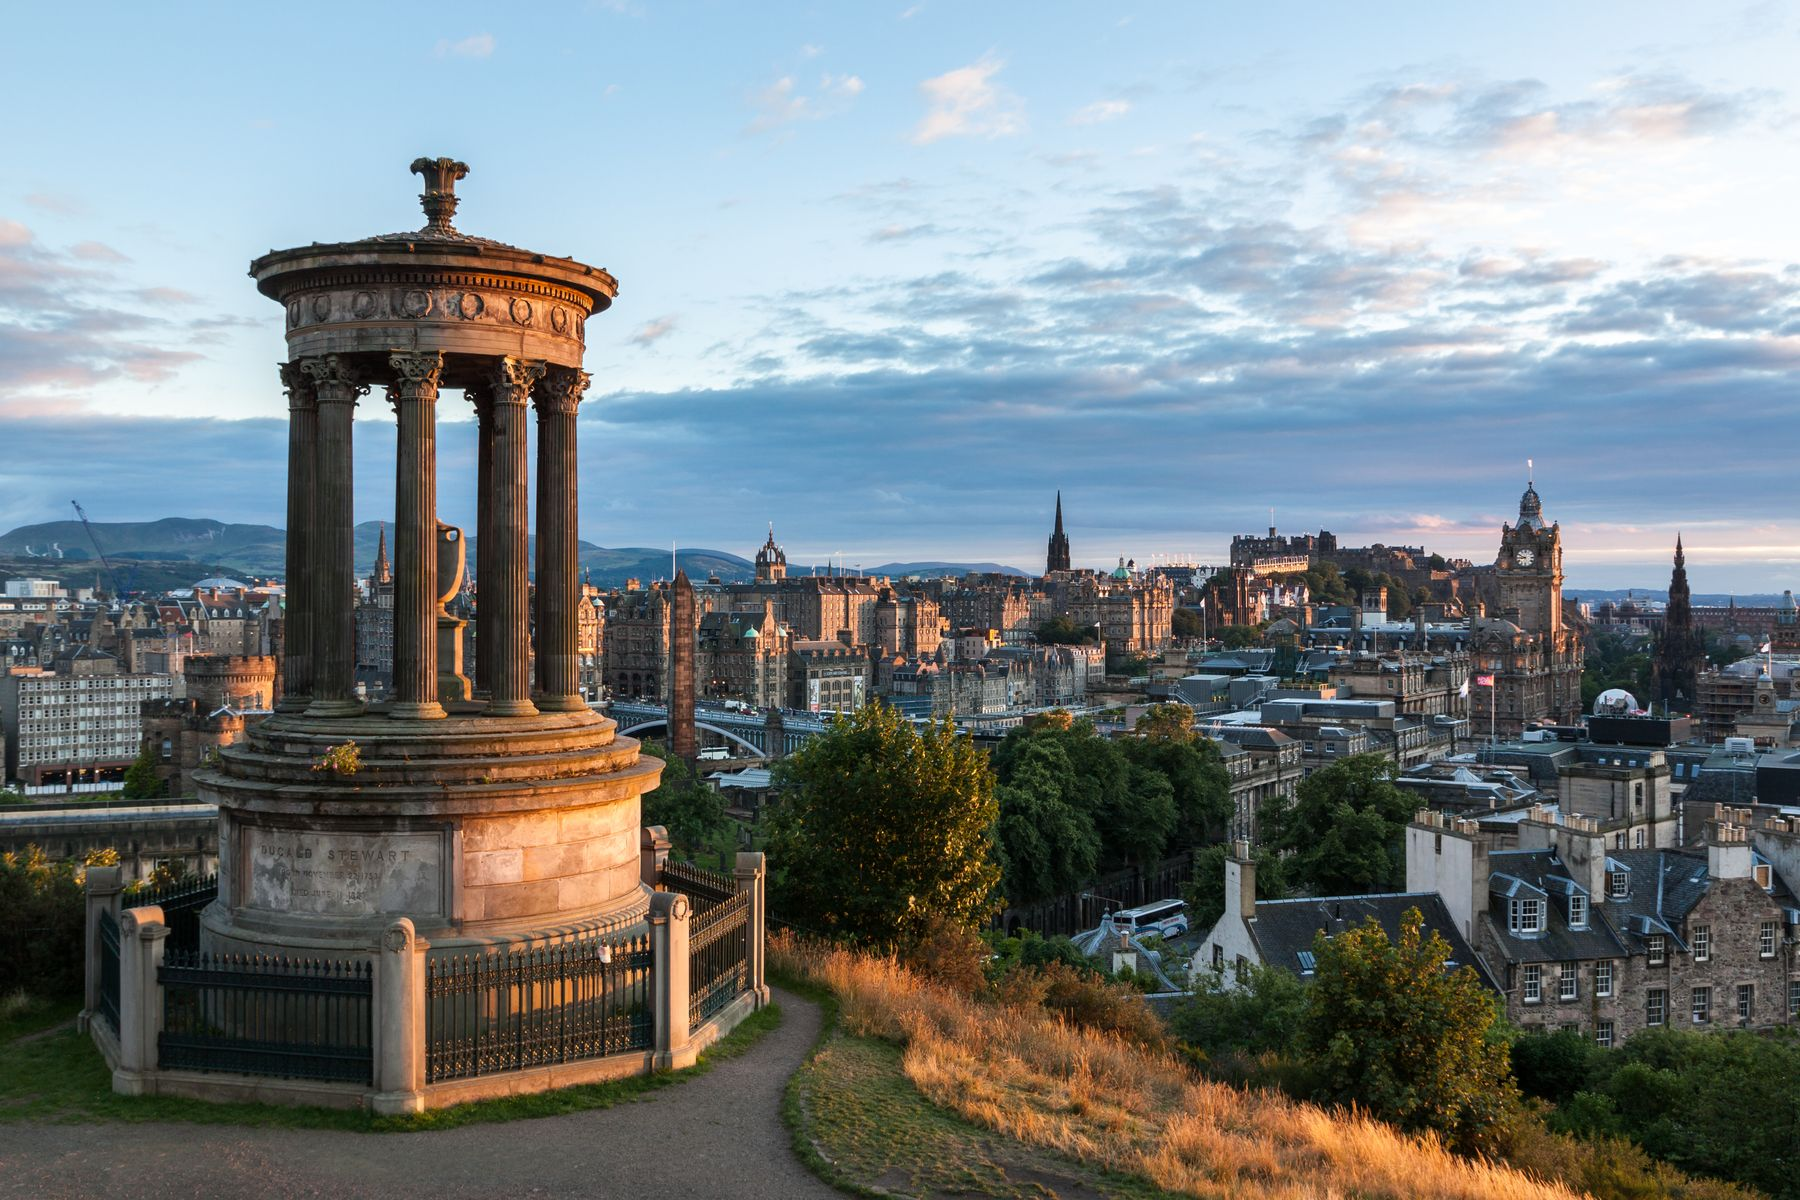 Picture shows the city of Edinburgh skyline, as seen from the top of Calton Hill with the National Monument of Scotland in the foreground.